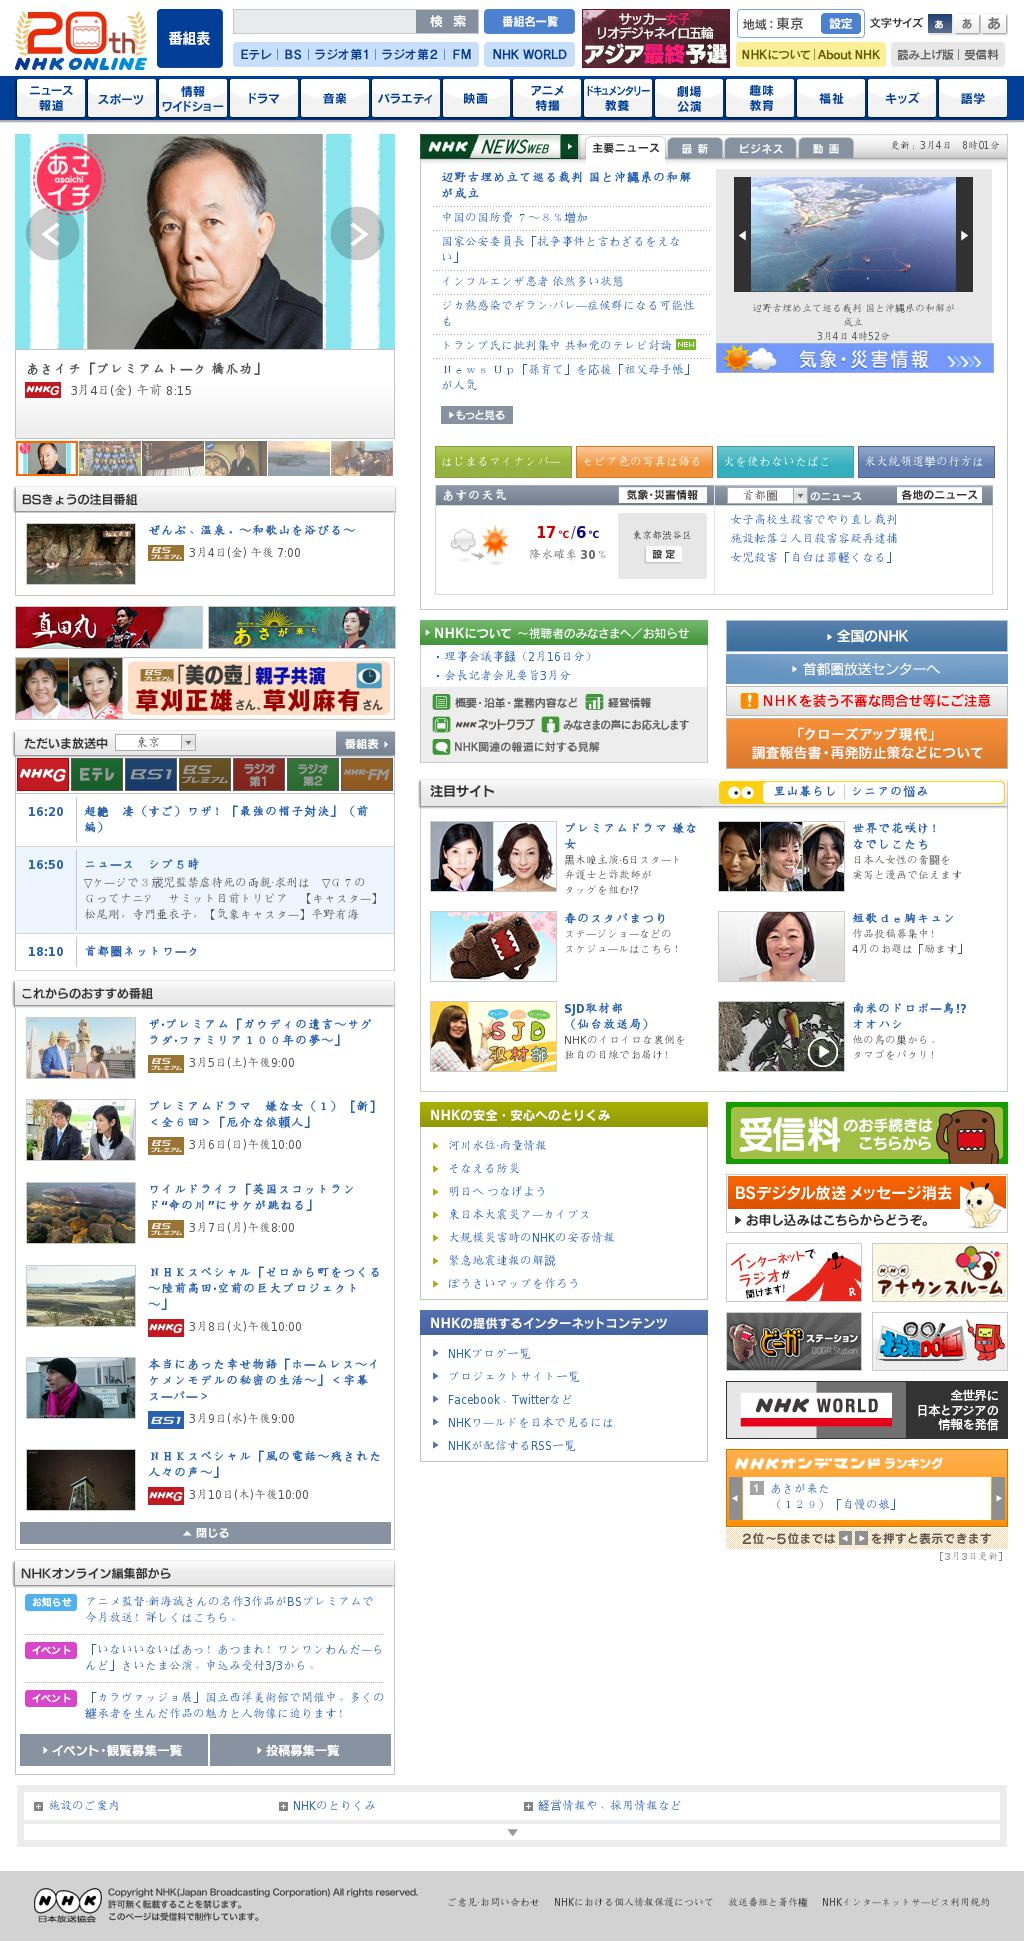 NHK Online at Friday March 4, 2016, 8:13 a.m. UTC